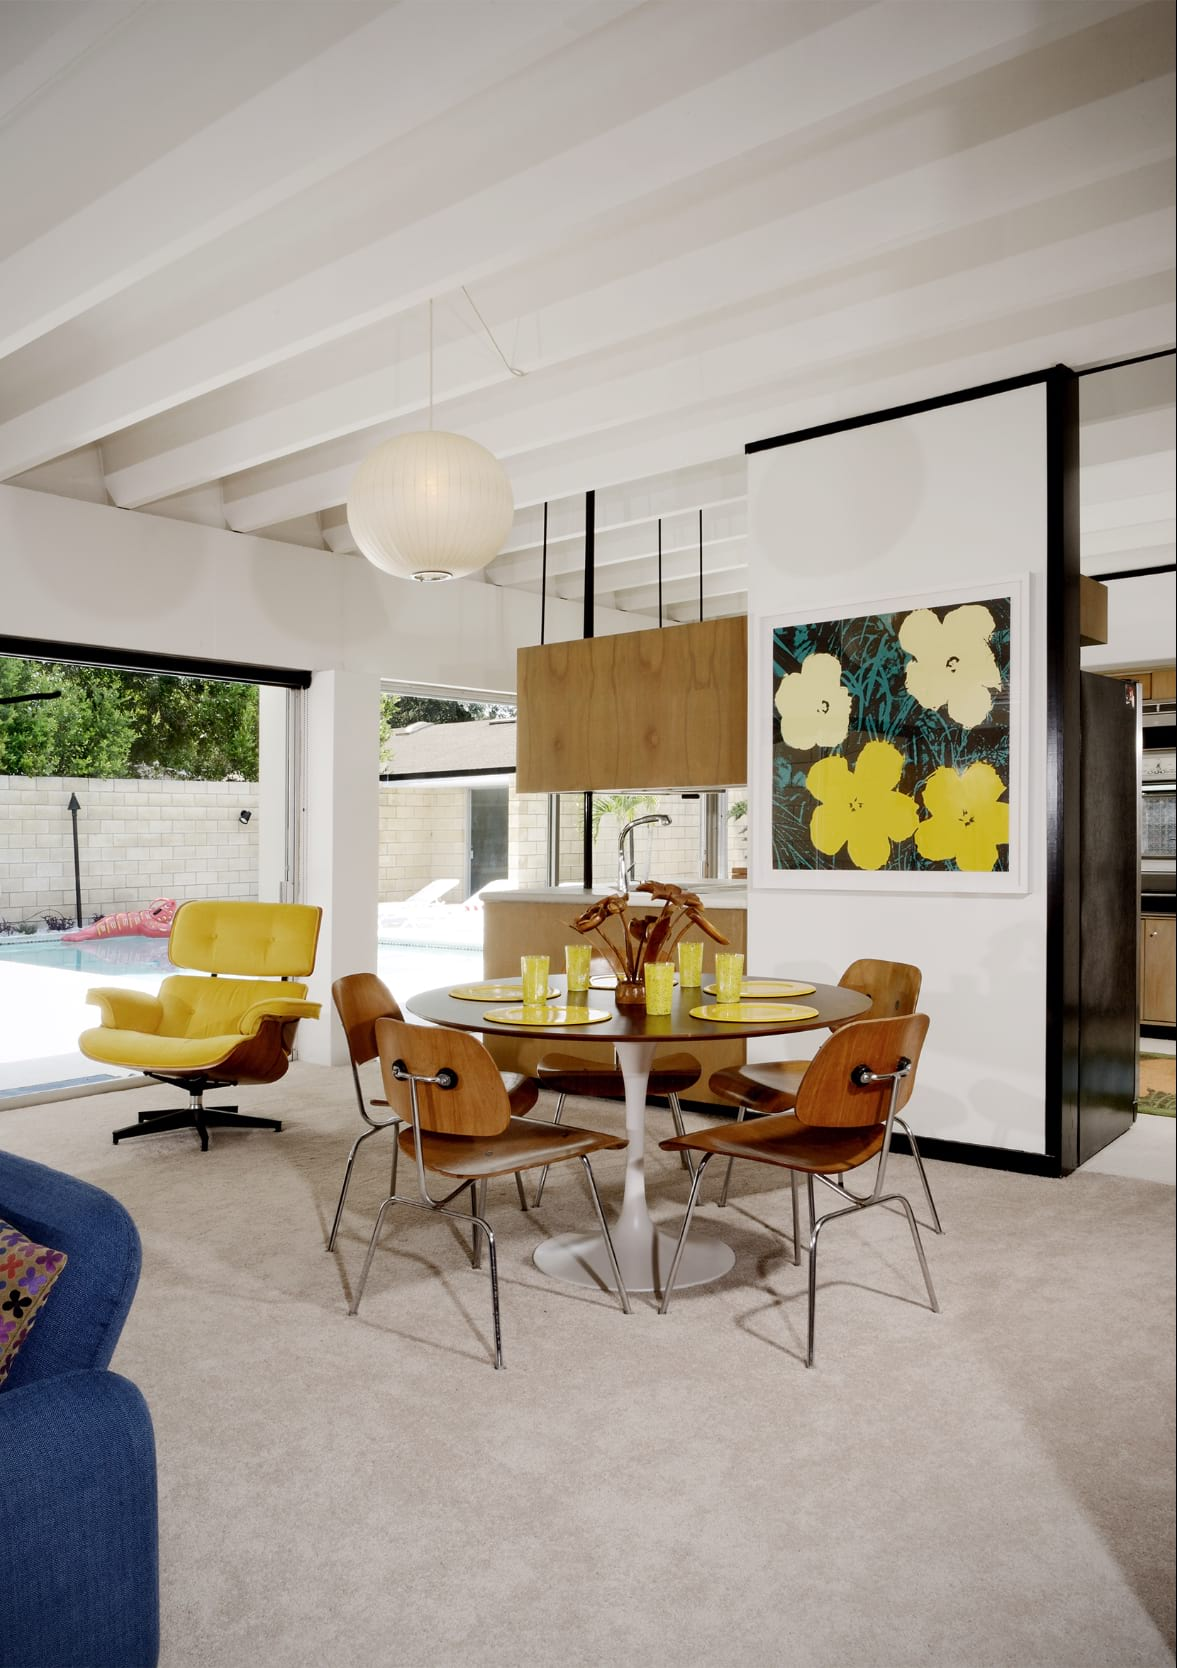 Christopher florentino - midcentury home Florida - dining area